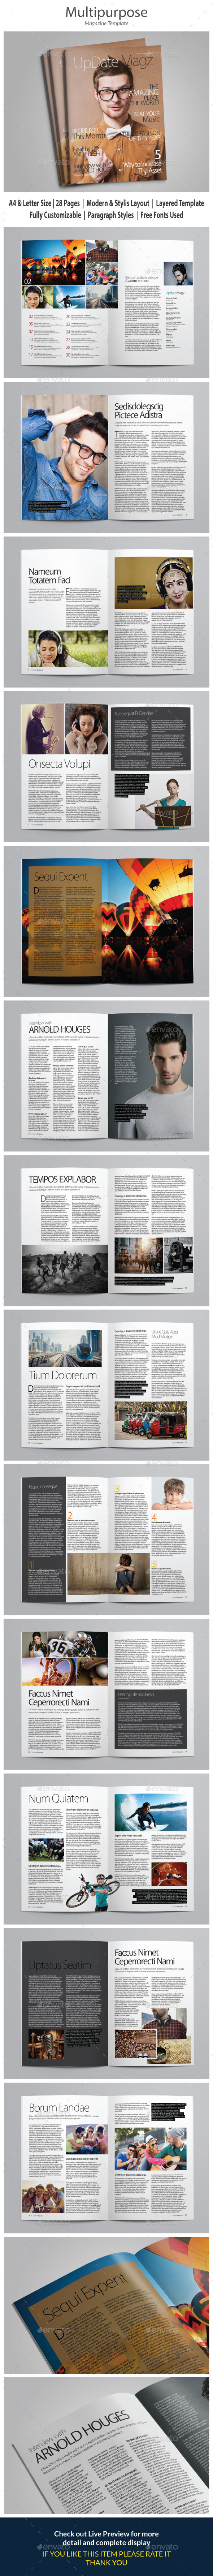 Indesign Magazine Template vol 3 - Magazines Print Templates